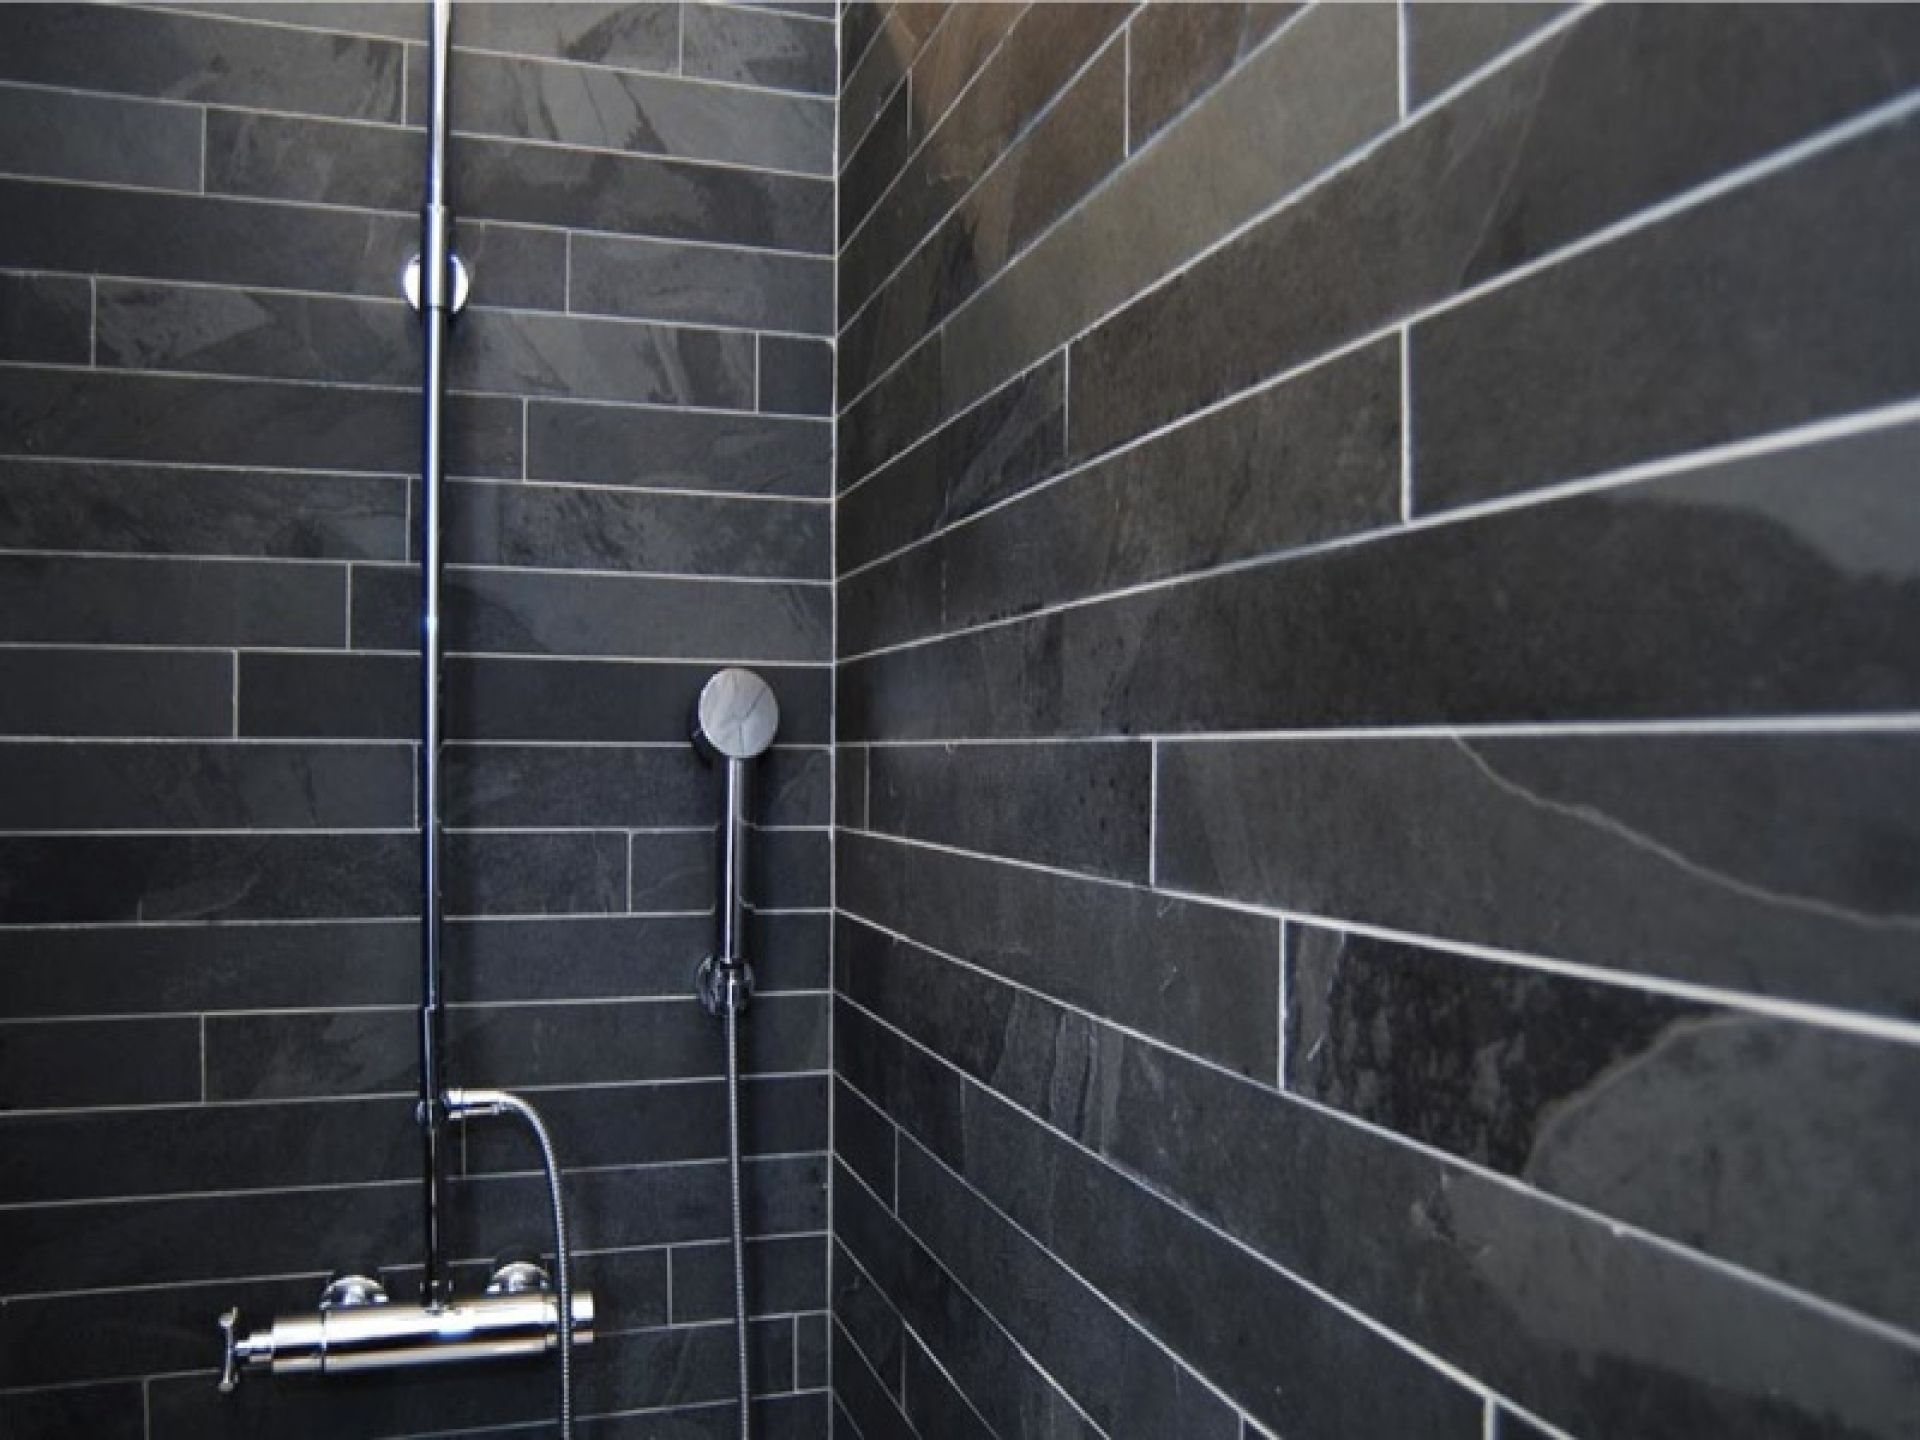 Slate bathroom shower designs - Home Design And Interior Design Gallery Of Beautiful Bathroom Slatestone Strip Cladding Black Slate Strip Tiles